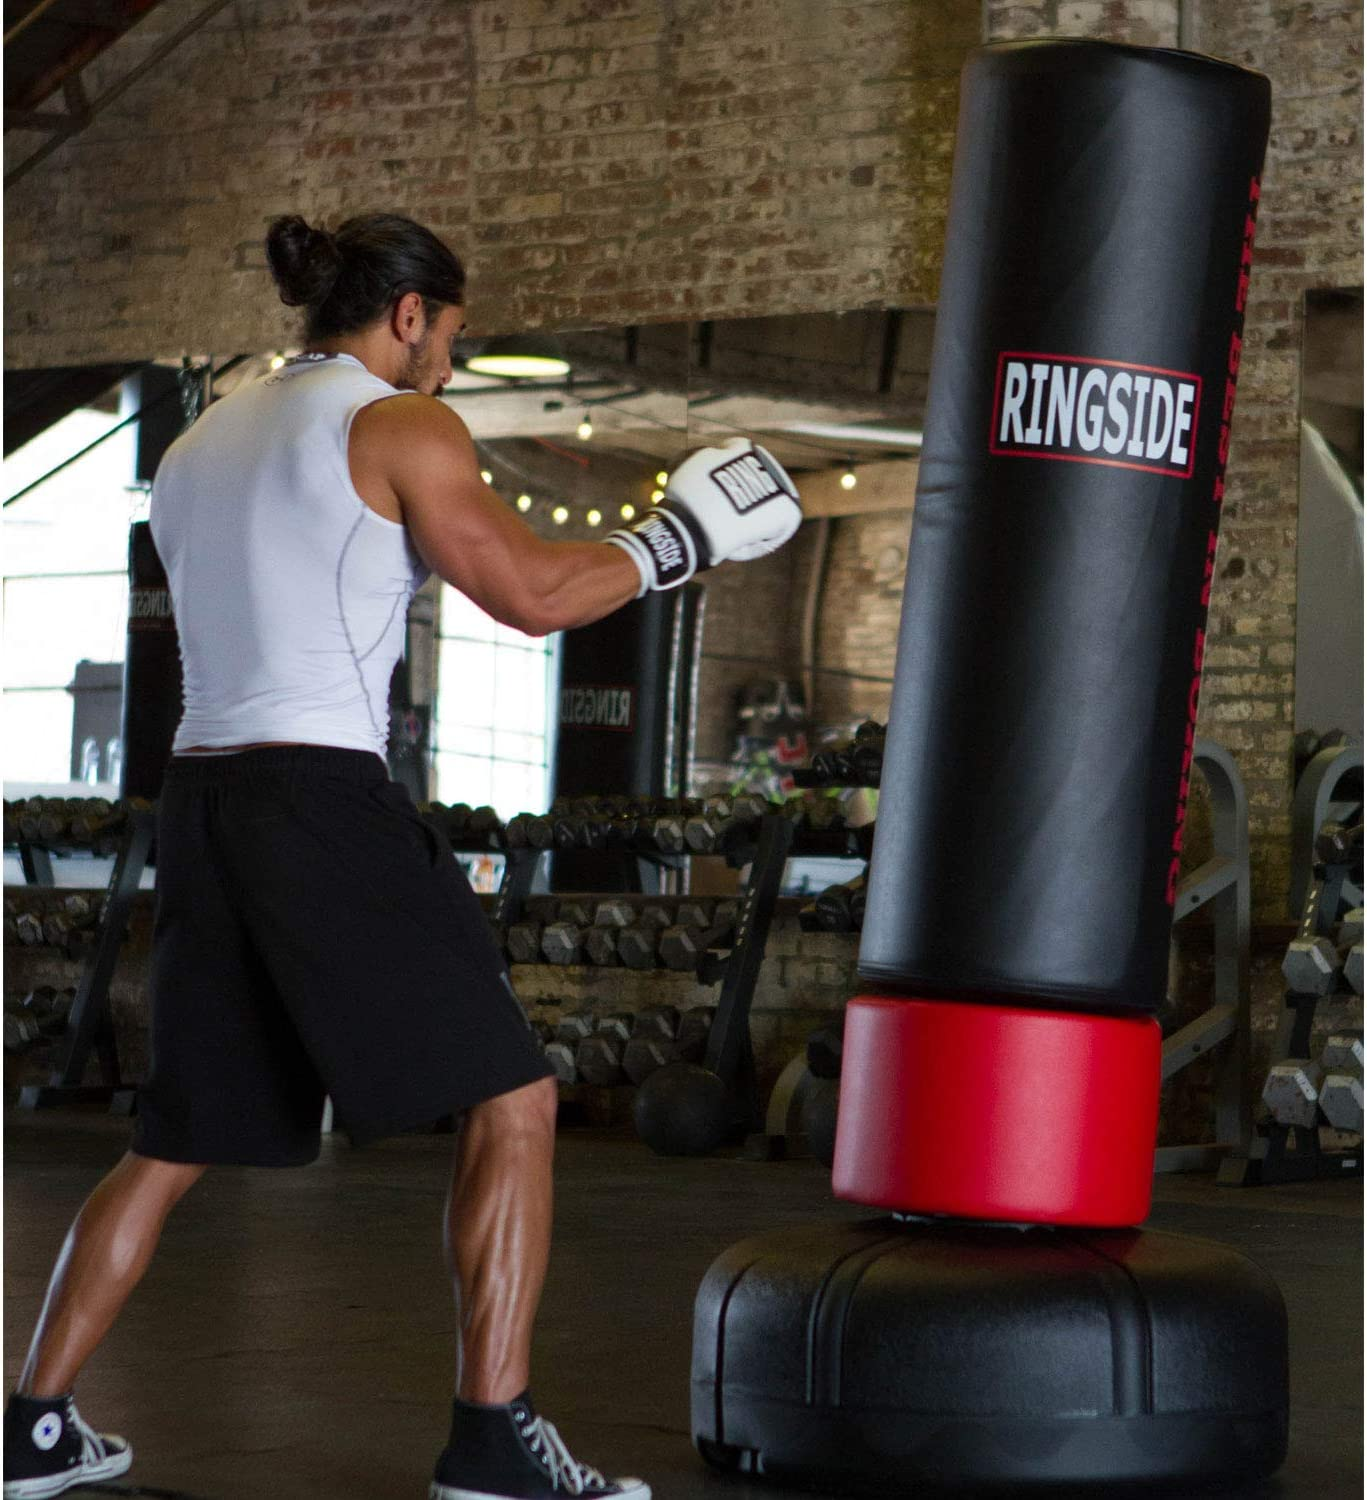 Ringside Elite Free-Standing Fitness Punching Bag